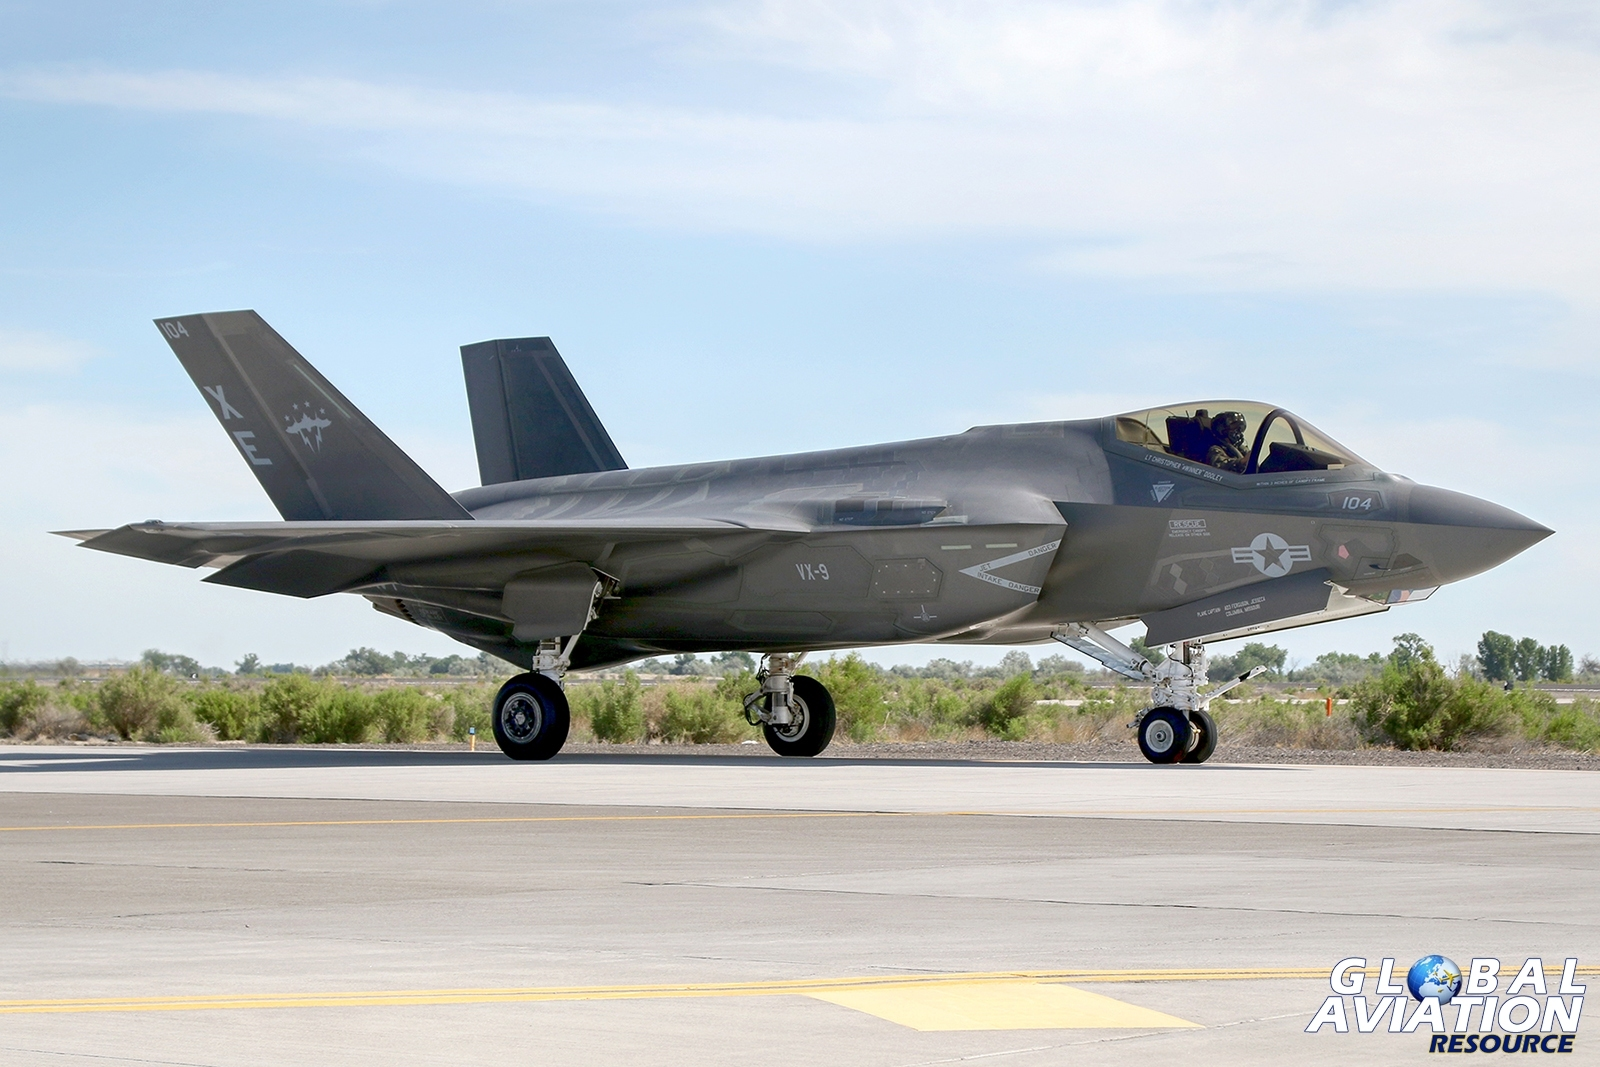 F-35C from VX-9 taxies out as part of a NAWDC organised exercise to devise tactics to integrate the F-35C into formations including fourth generation fighters © Paul Dunn - Global Aviation Resource